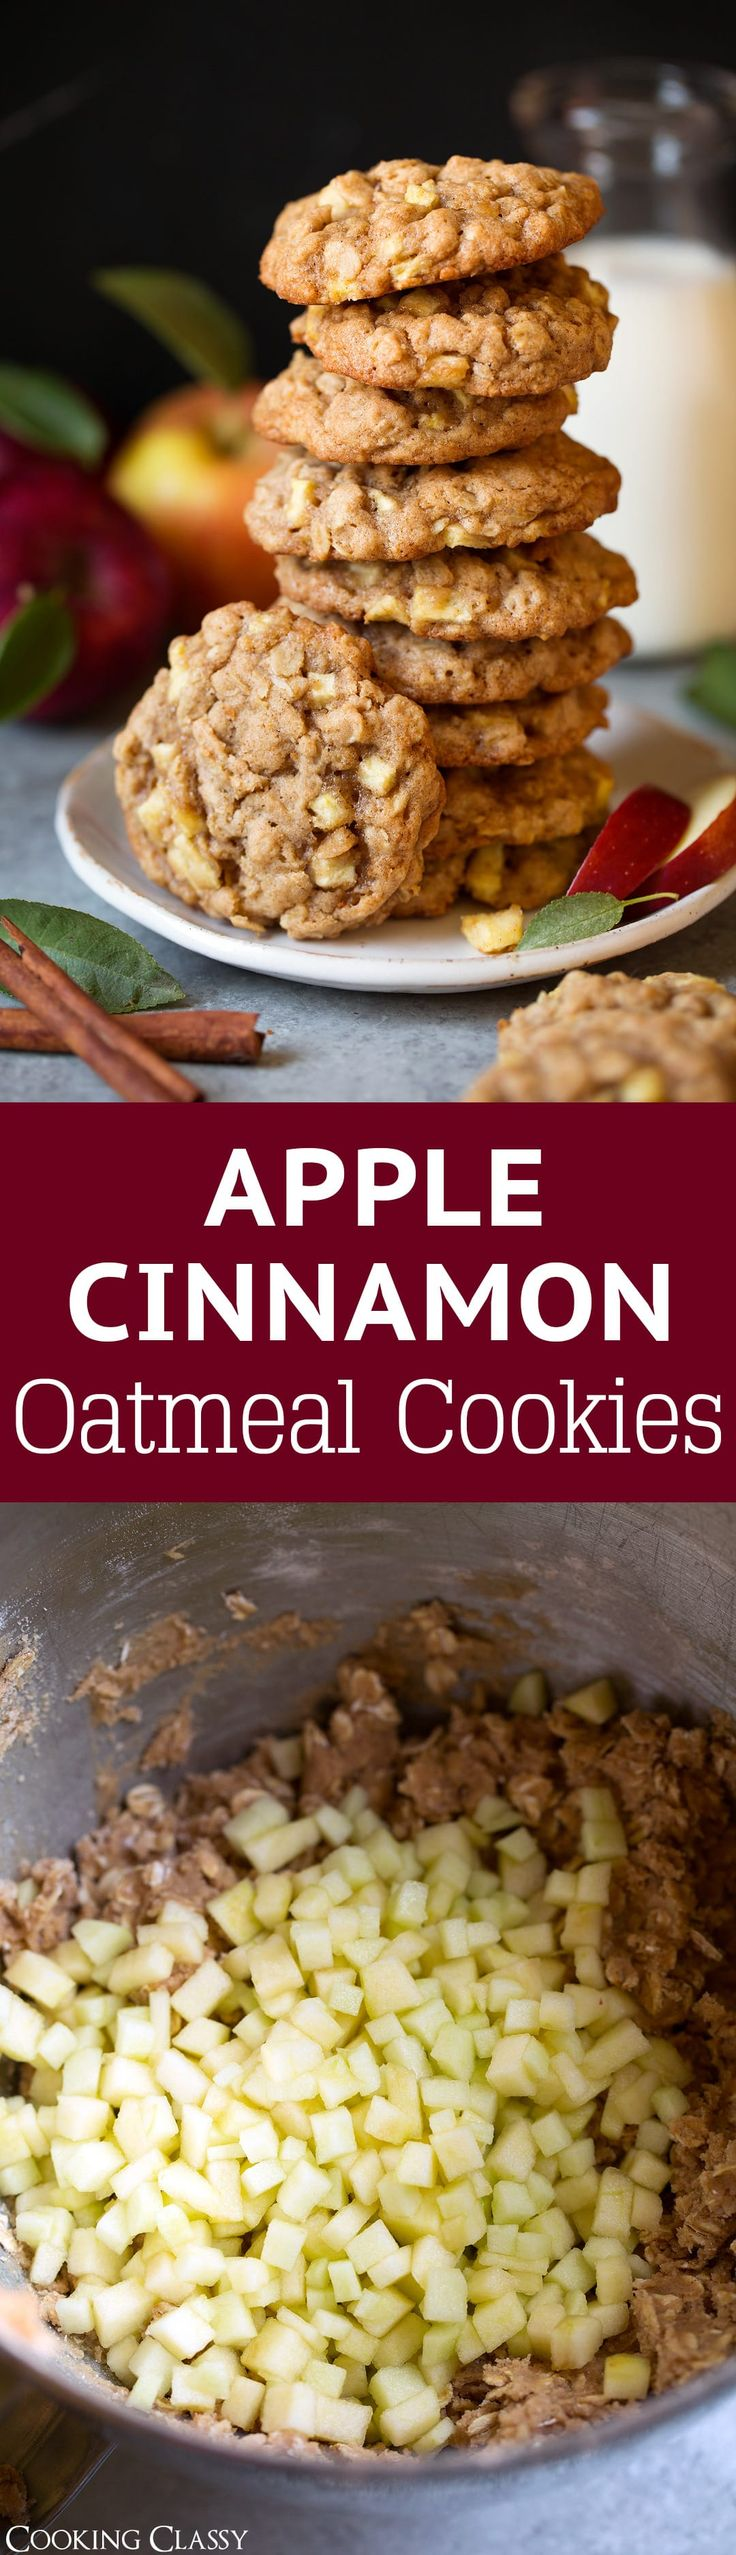 A soft cookie filled with oats, loaded with tiny chunks of apples and swirled with plenty of cinnamon. The perfect fall cookie!